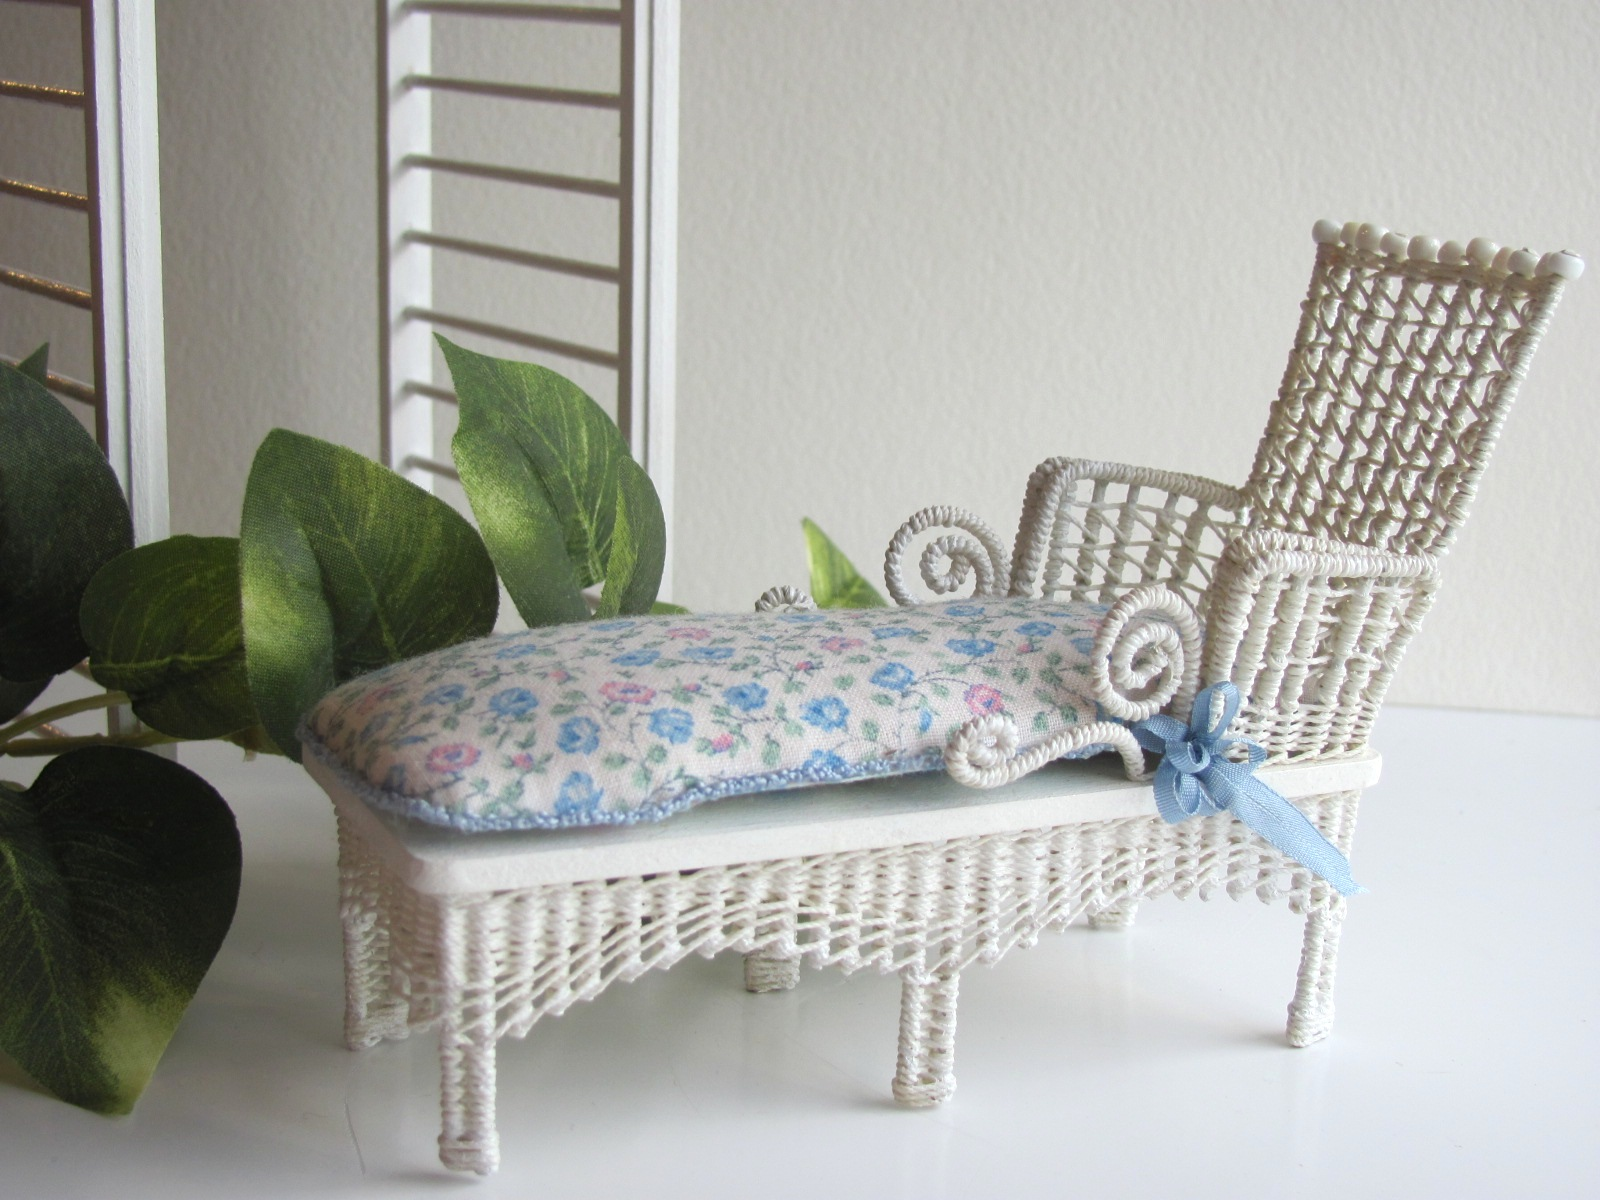 Chaise Design Miniature White Cottage Chic Wicker Chaise Lounge 1 12 Miniature Dollhouse Garden Chair Or Seaside Beach Cottage Decor From Middle Street Miniatures